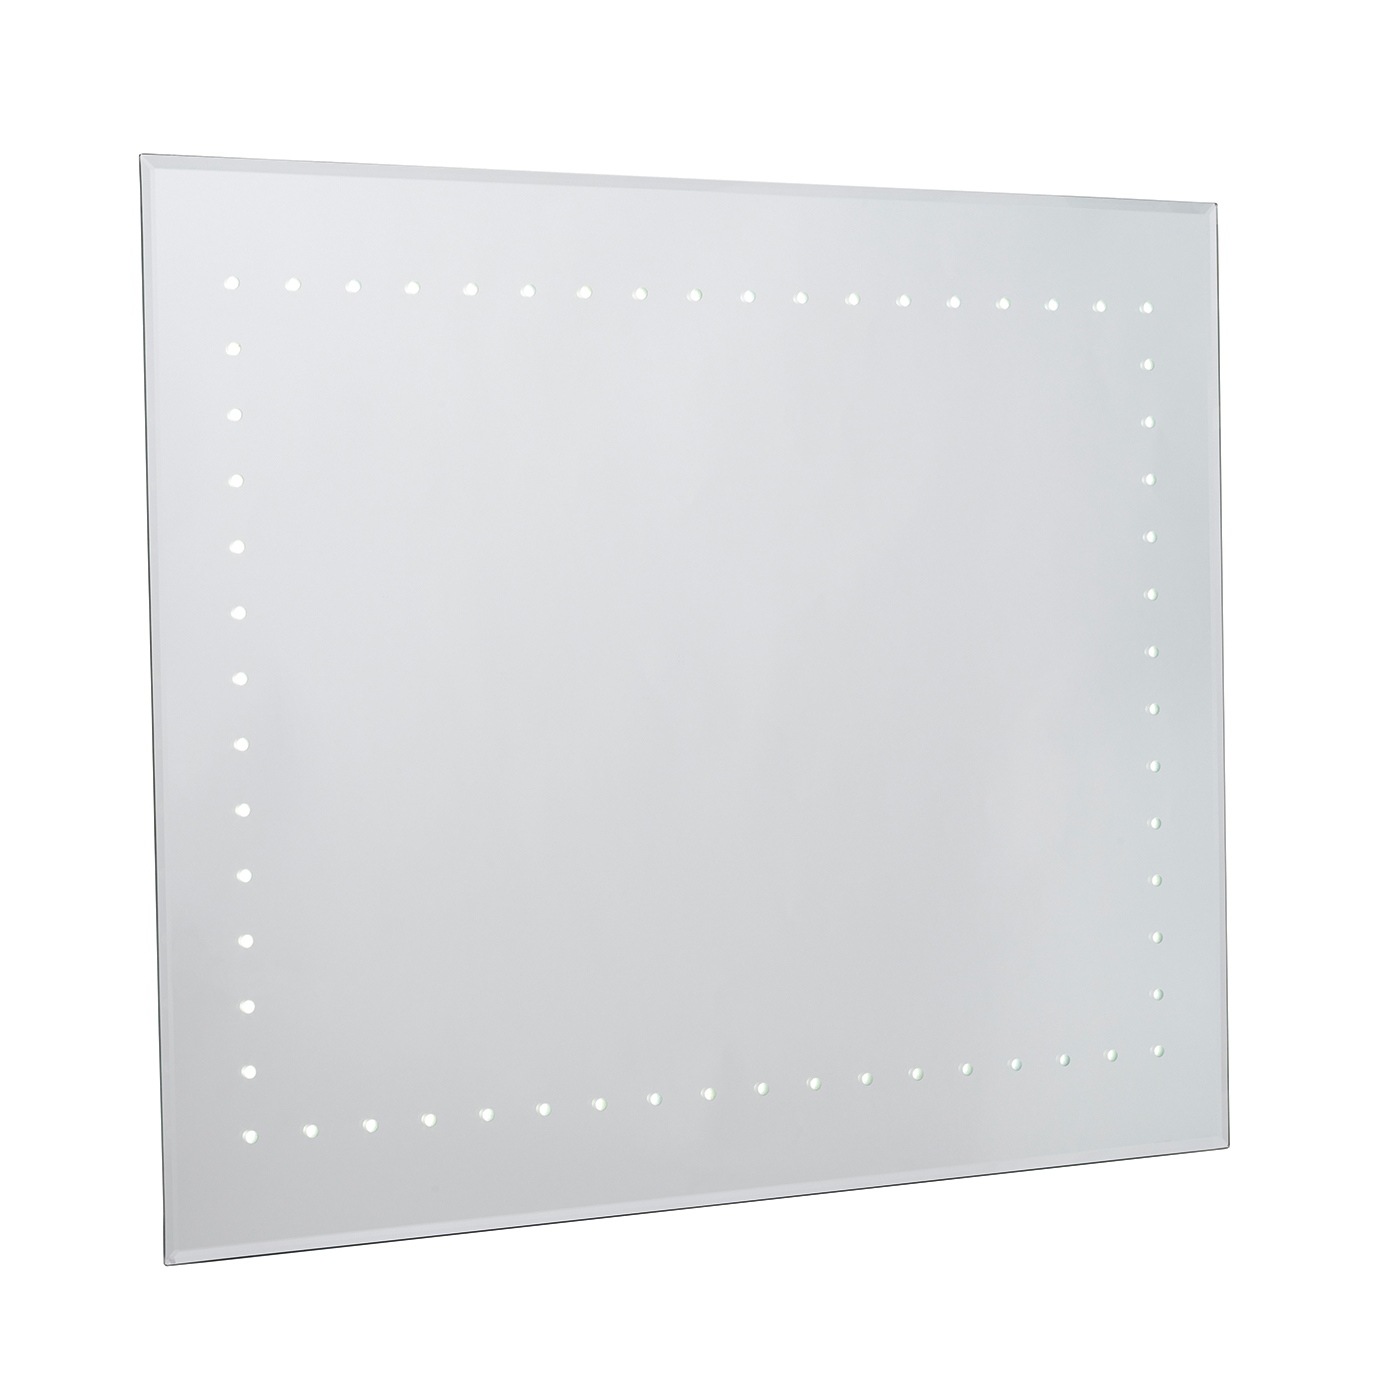 Endon Kalamos LED bathroom mirror IP44 6W demister sensor H: 670mm W: 800mm Thumbnail 1